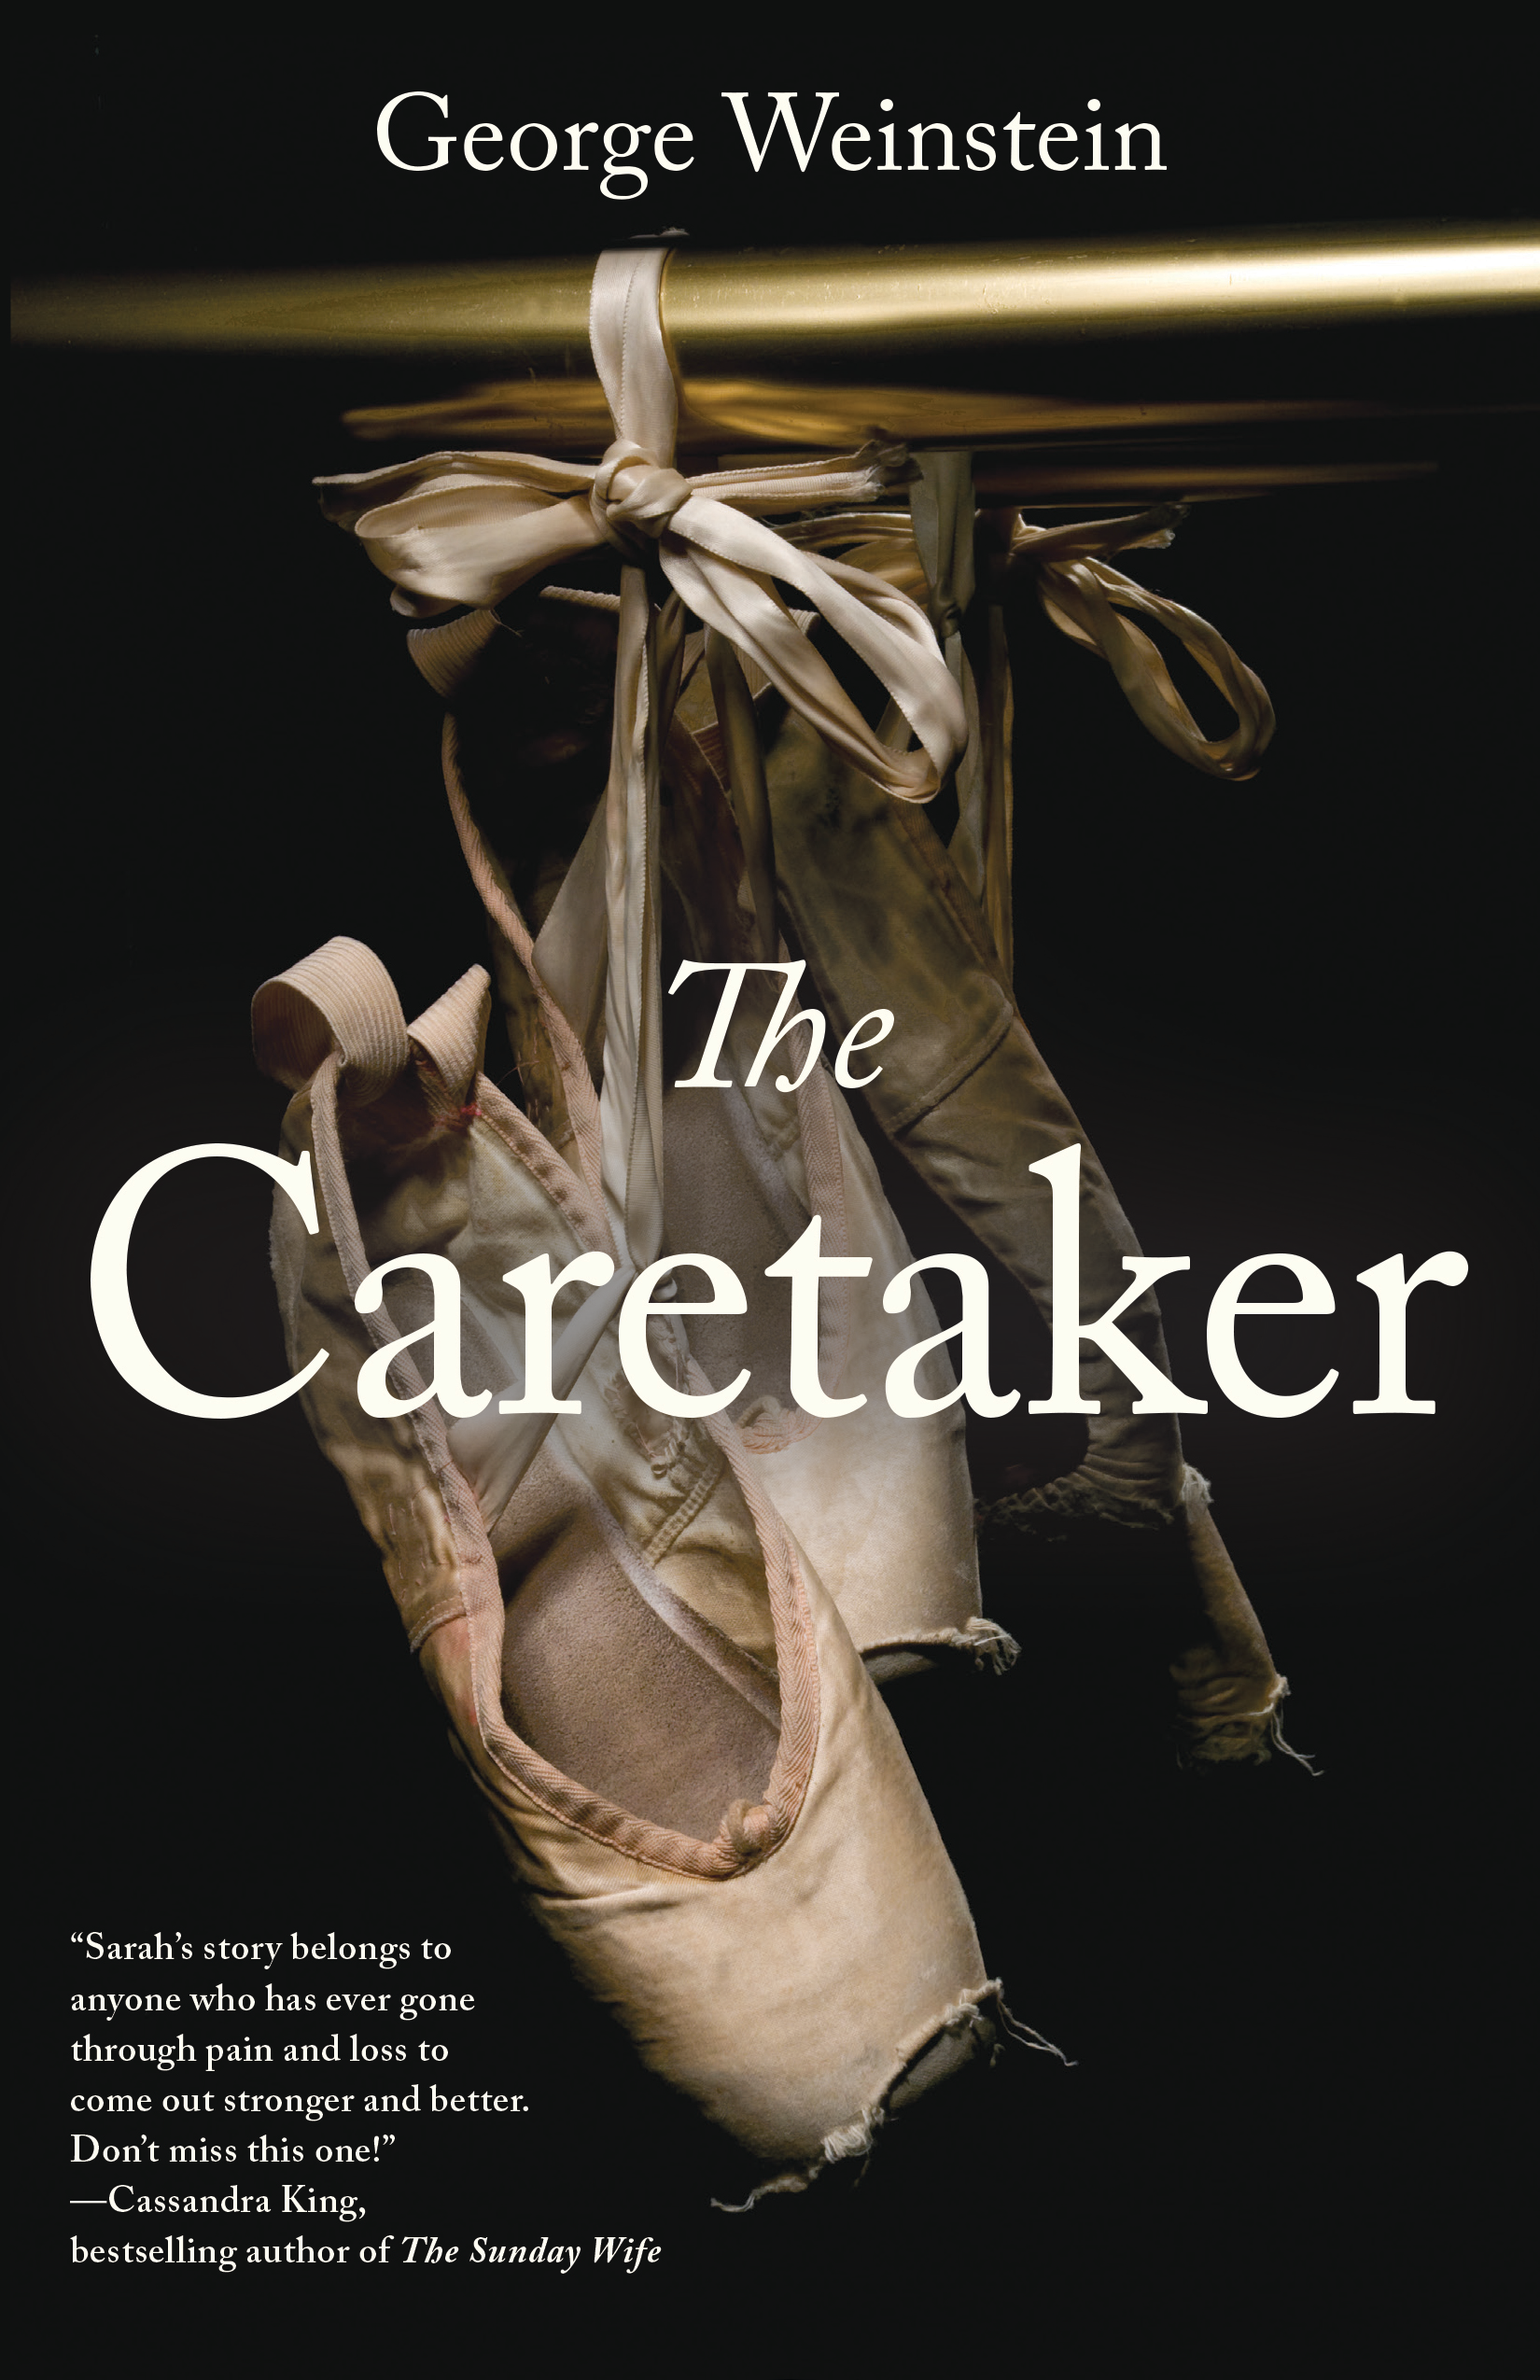 The Caretaker by George Weinstein (SFK Press, February 2019)